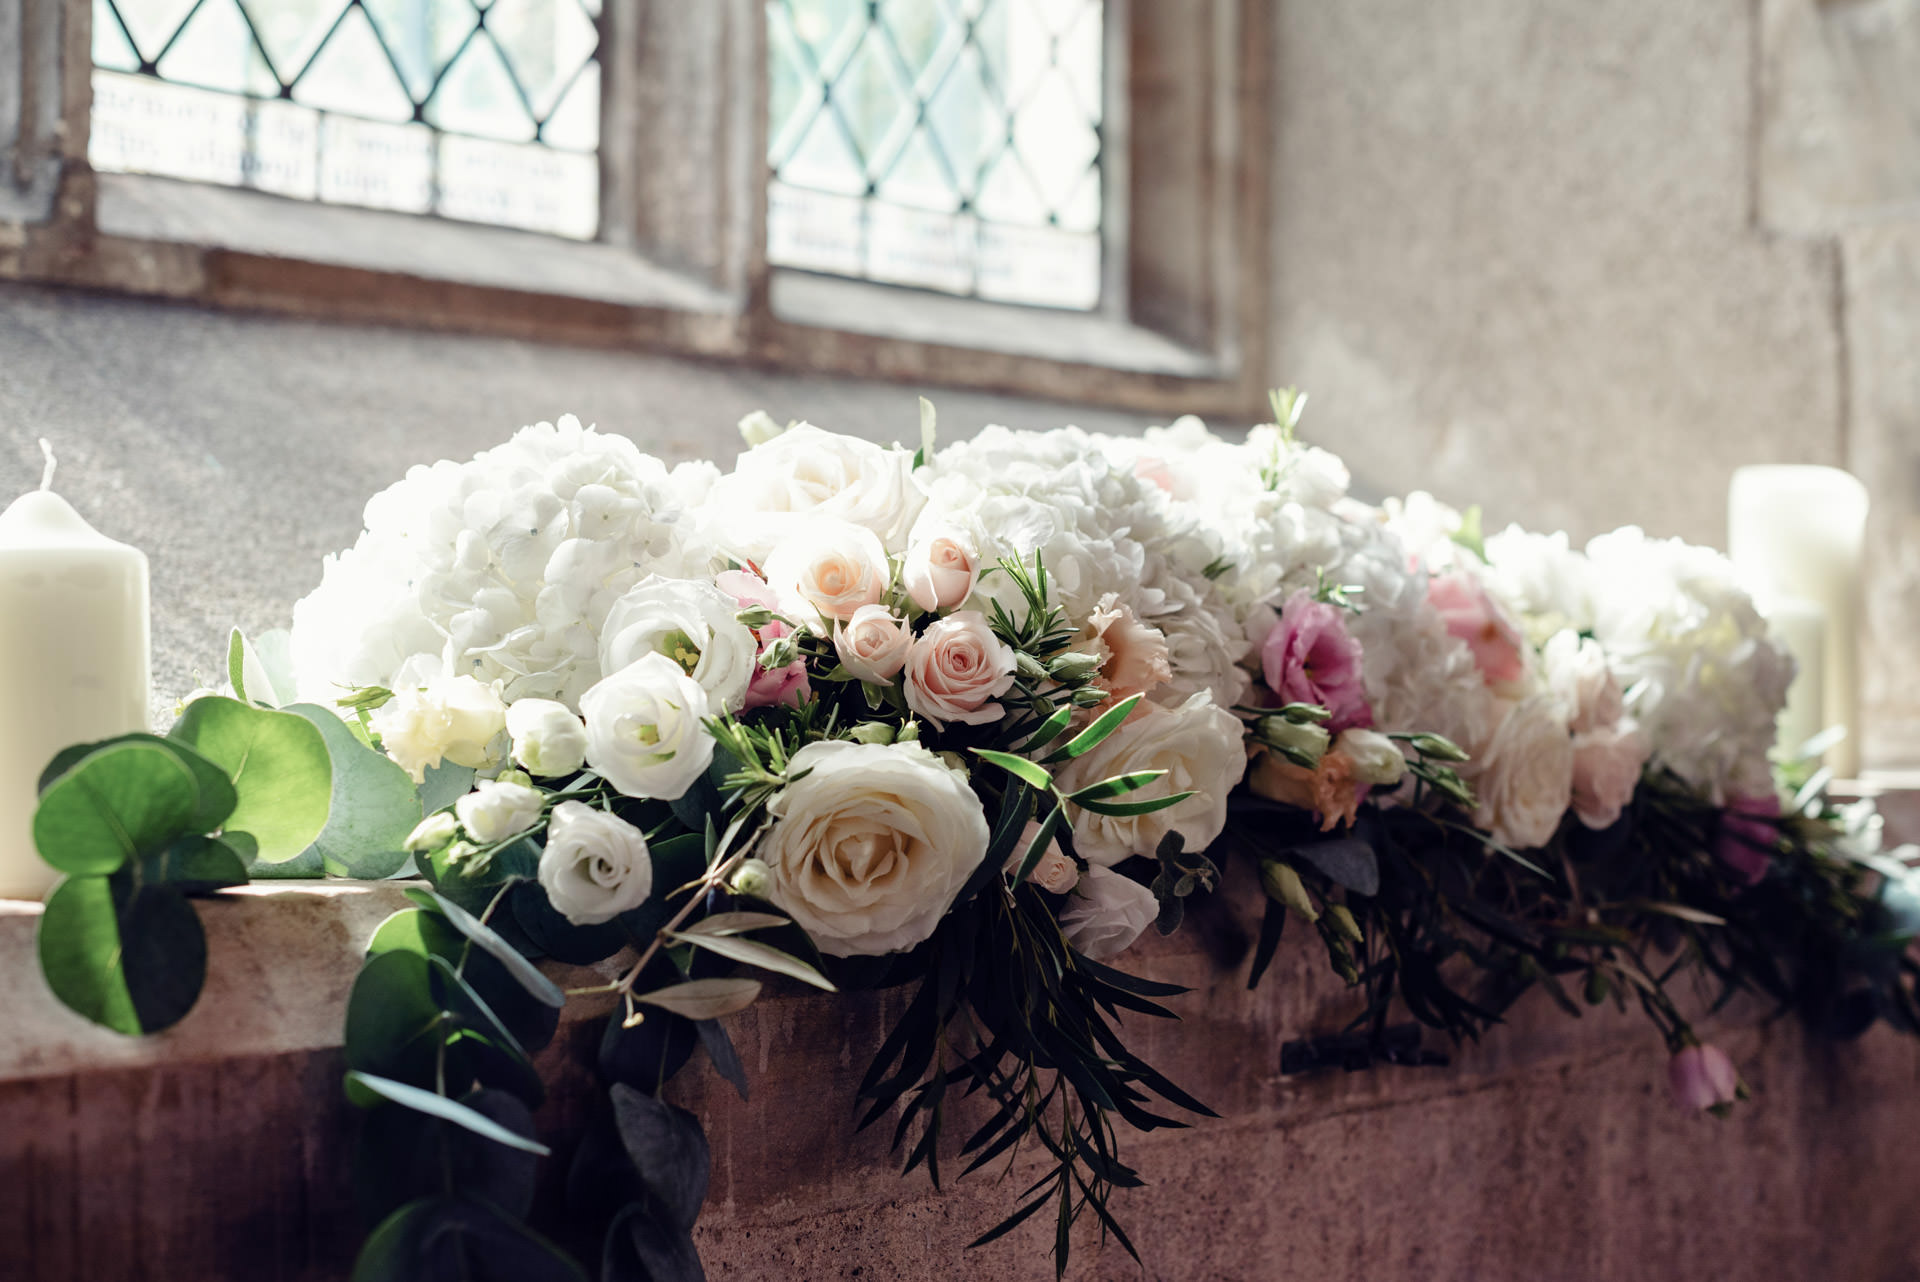 Gorgeous windowsill arrangements in the chapel at Hengrave Hall.